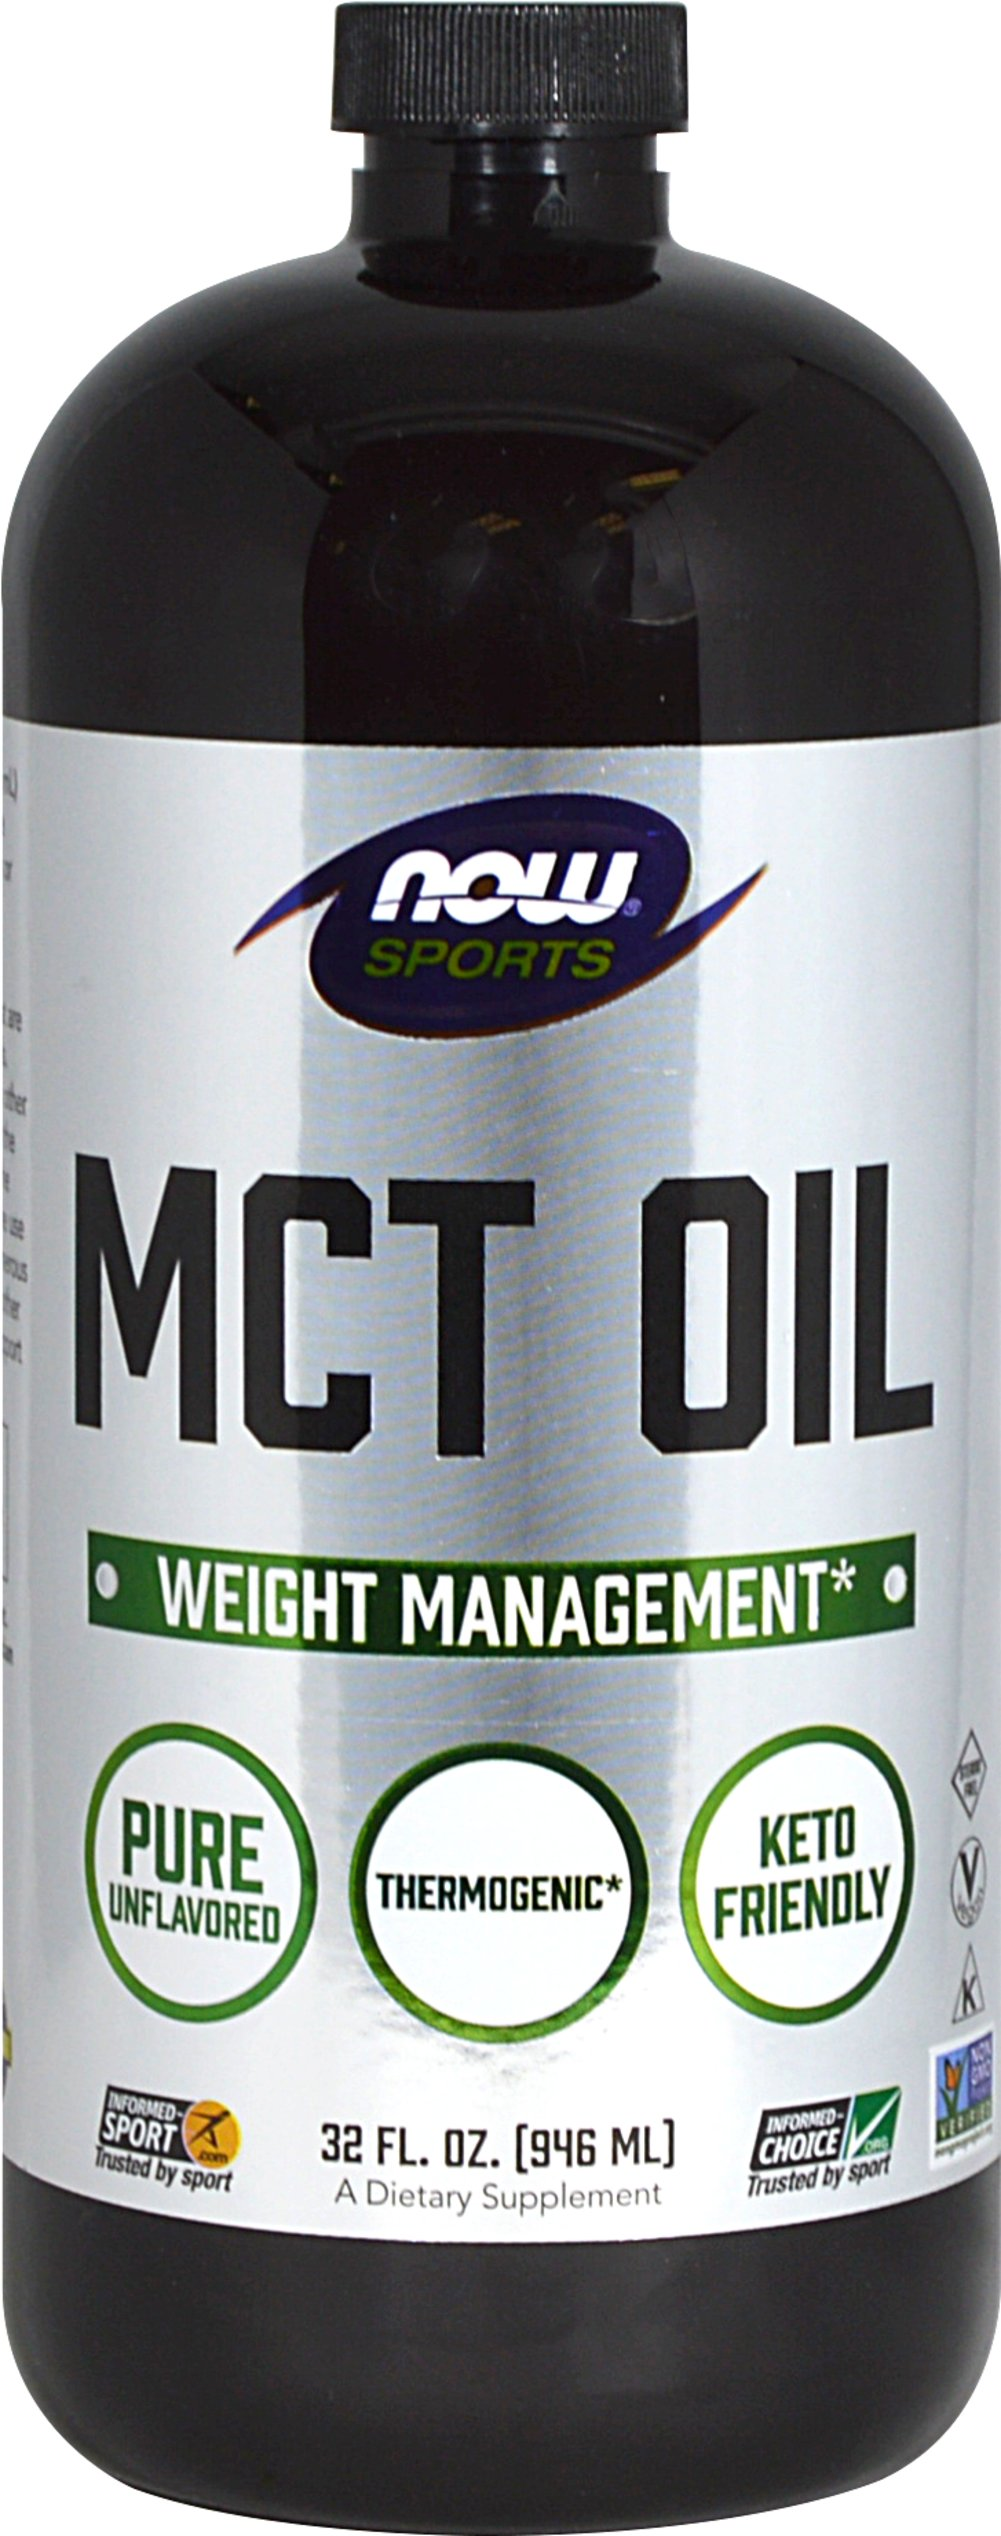 MCT Oil Thumbnail Alternate Bottle View